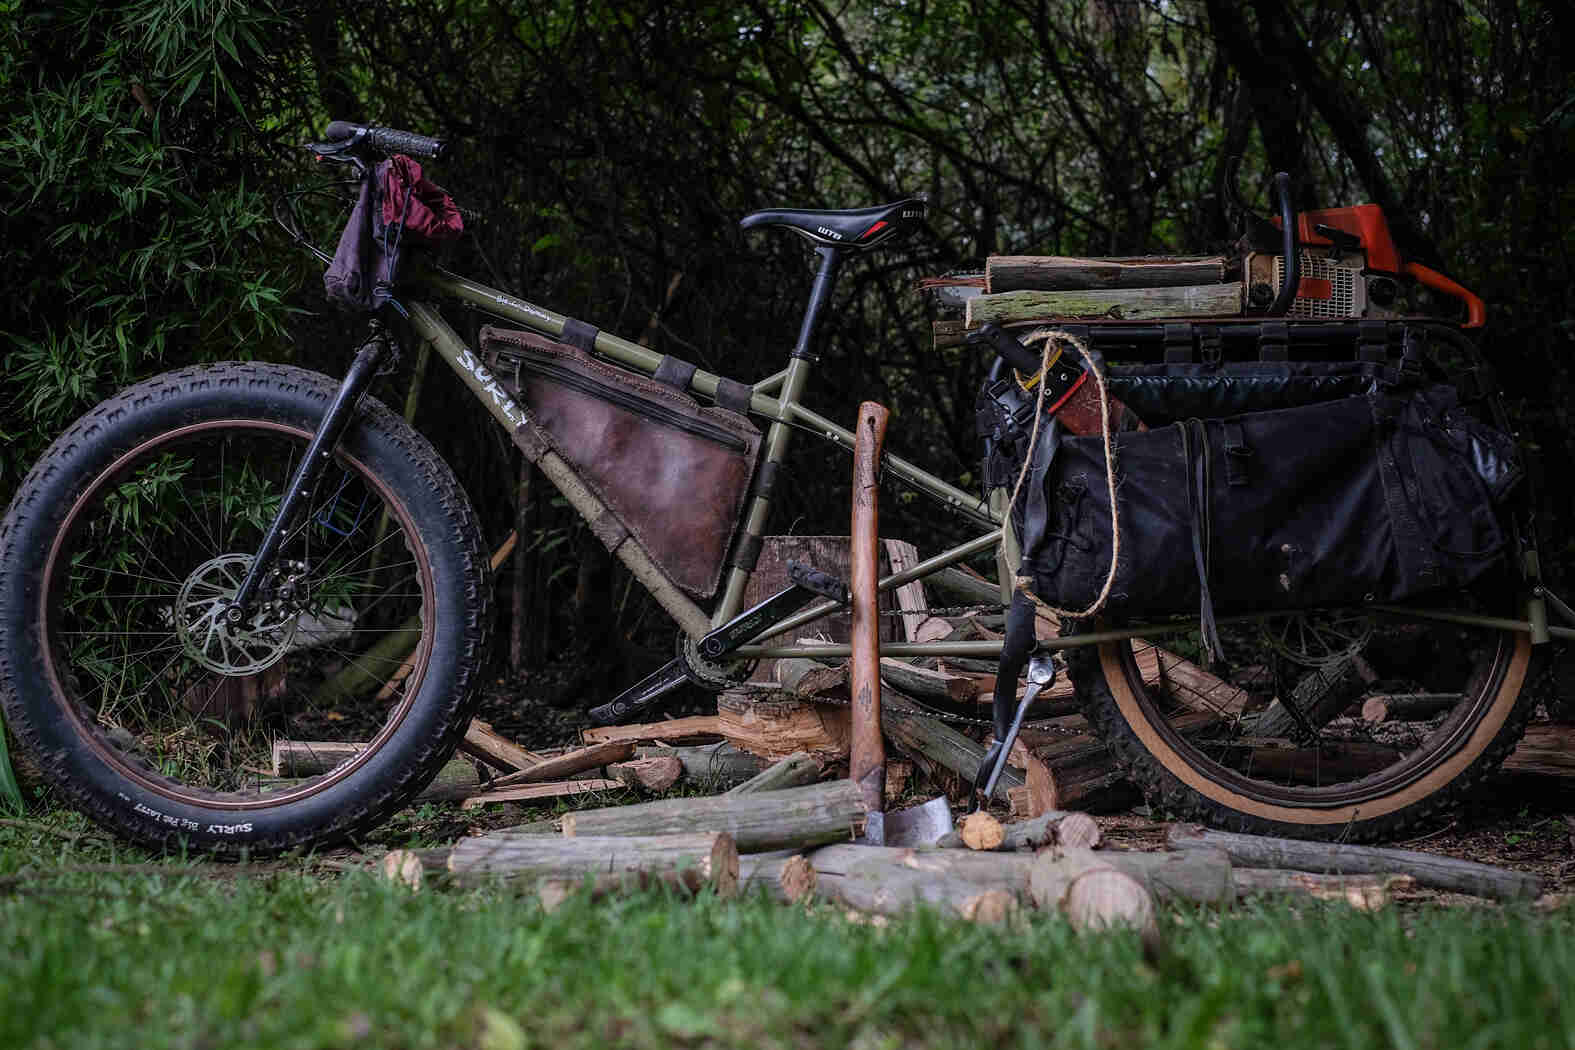 Left view of a Surly Big Fat Dummy bike, on top of axe chopped logs, with thick woods in the background